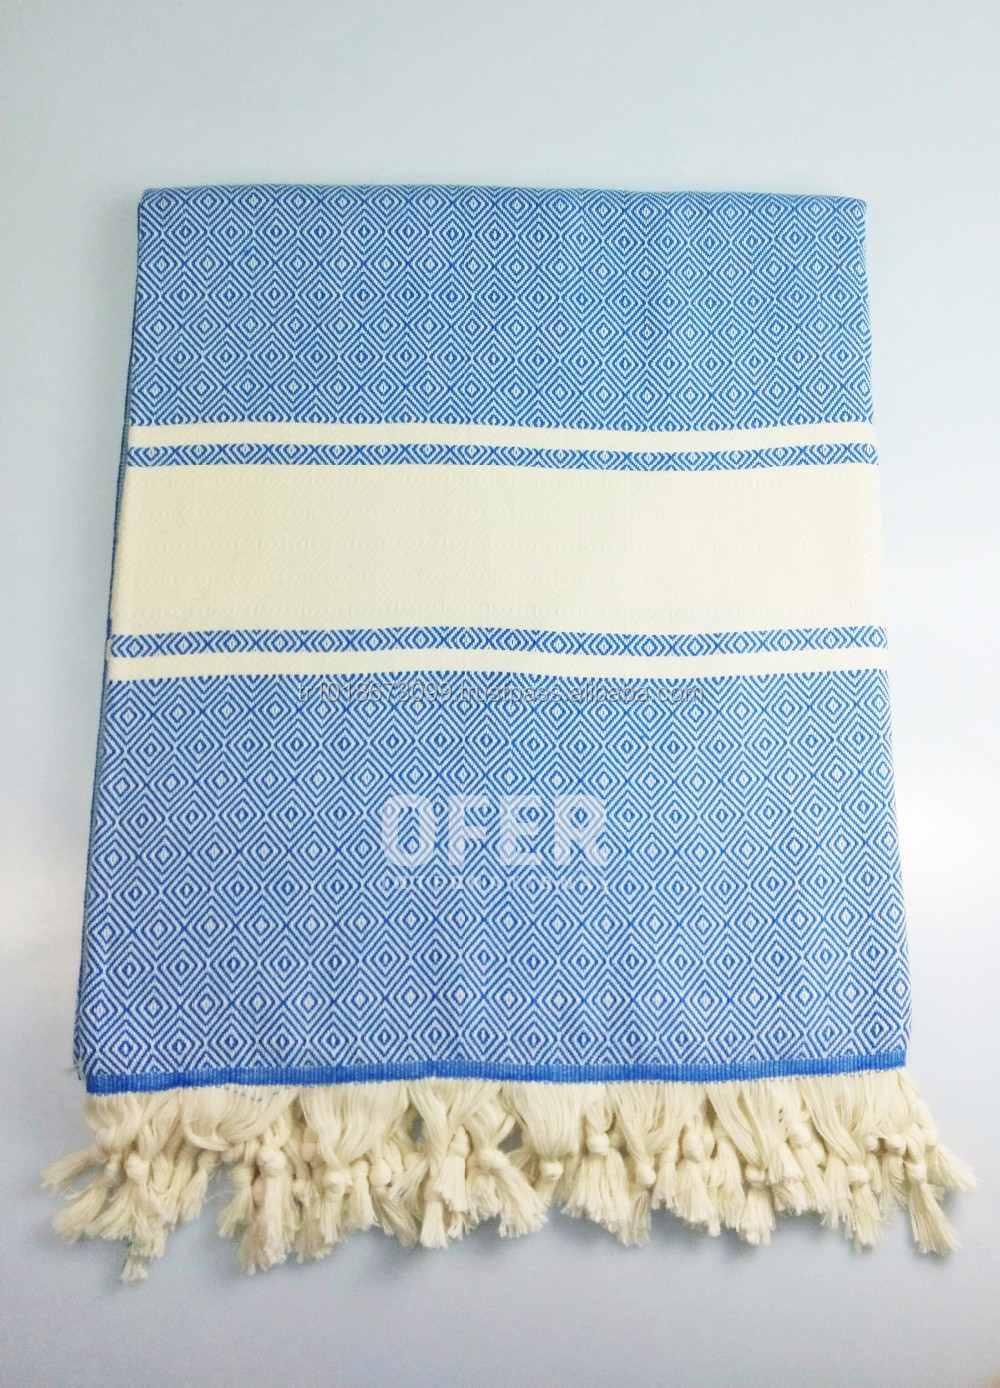 Diamond Turkish towel throw blanket, beach blanket, beach throw 100% cotton, pestemal, hammam, Blue - French Diamond